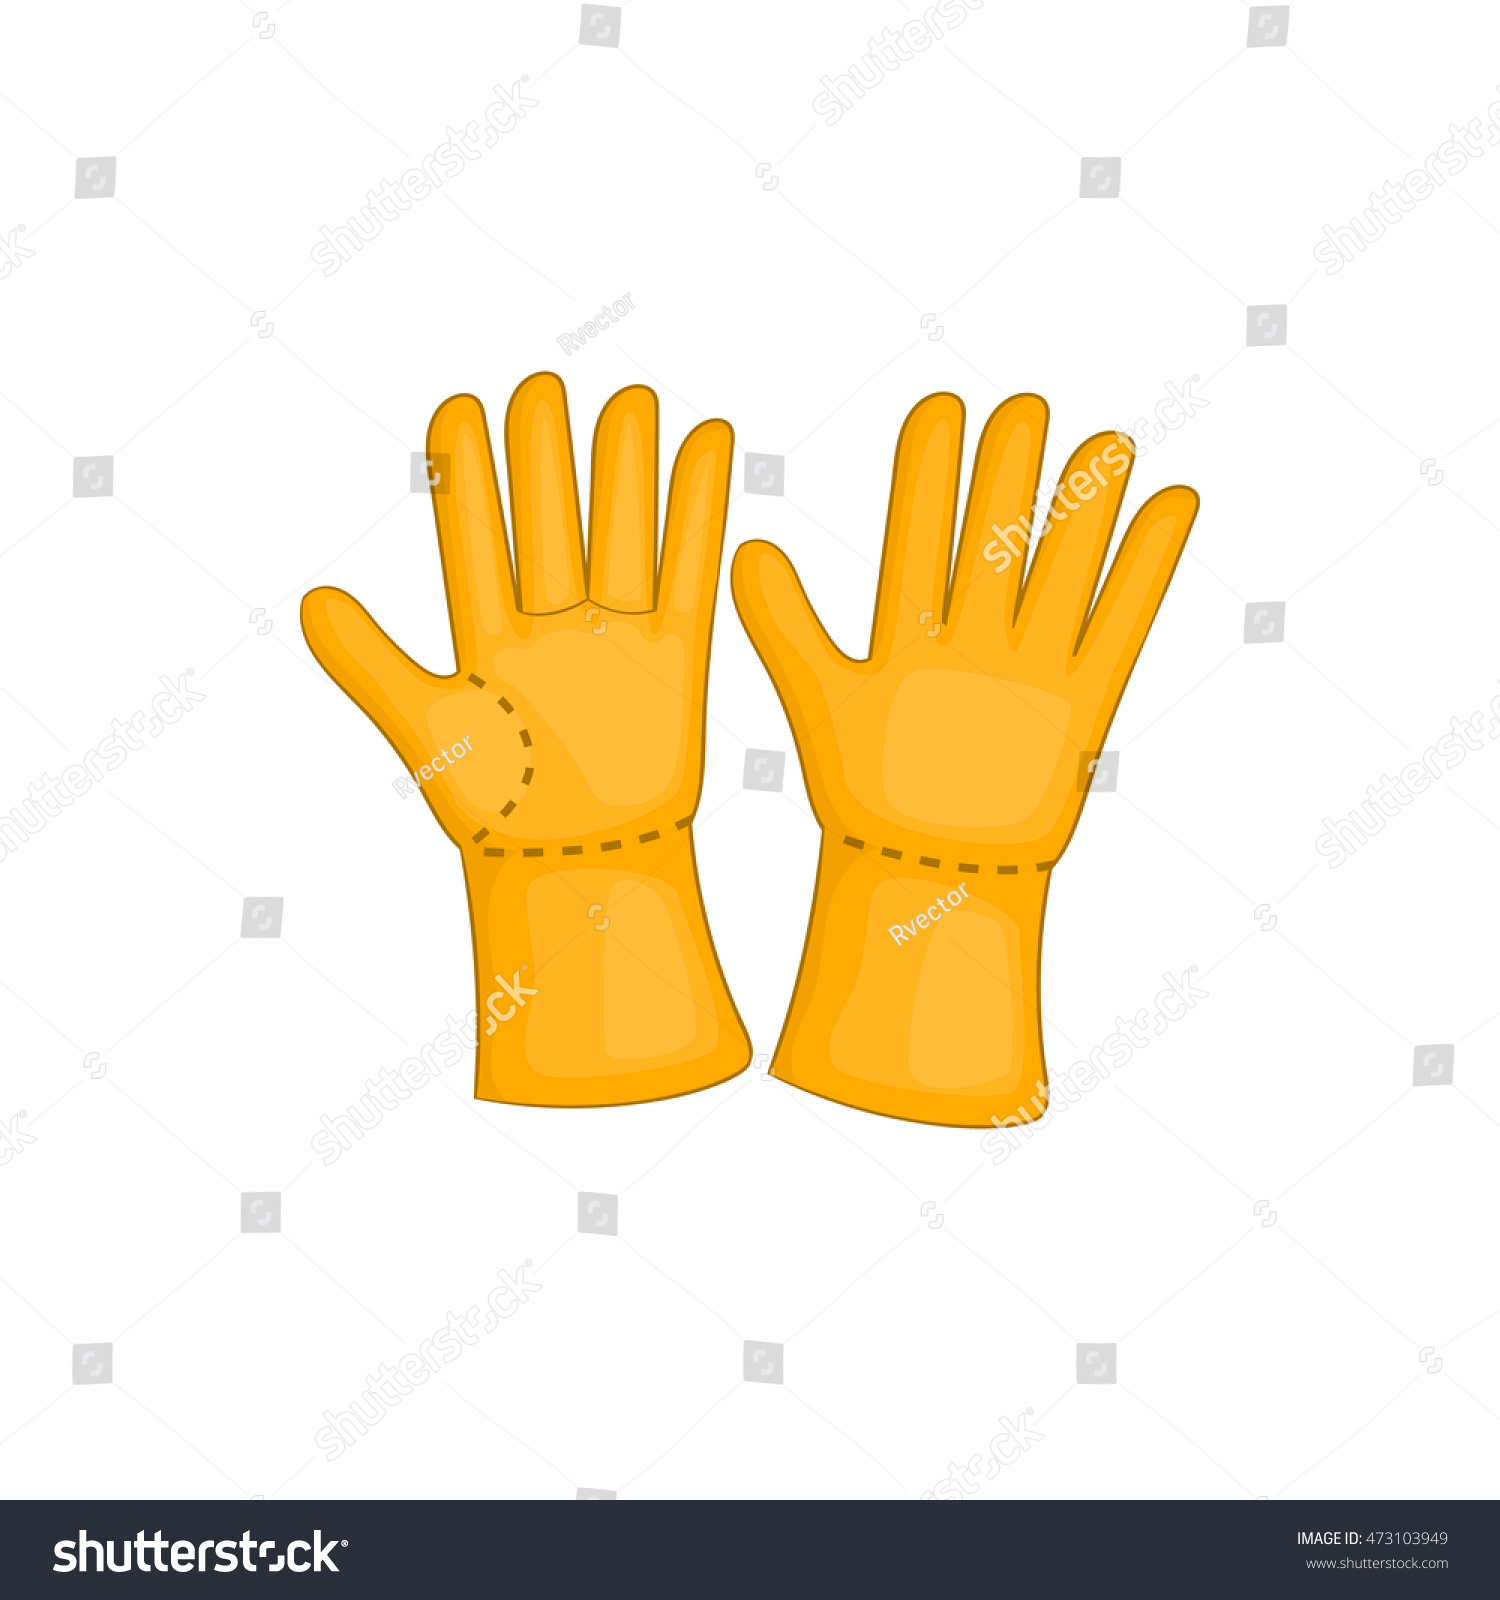 Rubber gloves icon cartoon style isolated stock vector 473103949 rubber gloves icon in cartoon style isolated on white background protection for hands symbol biocorpaavc